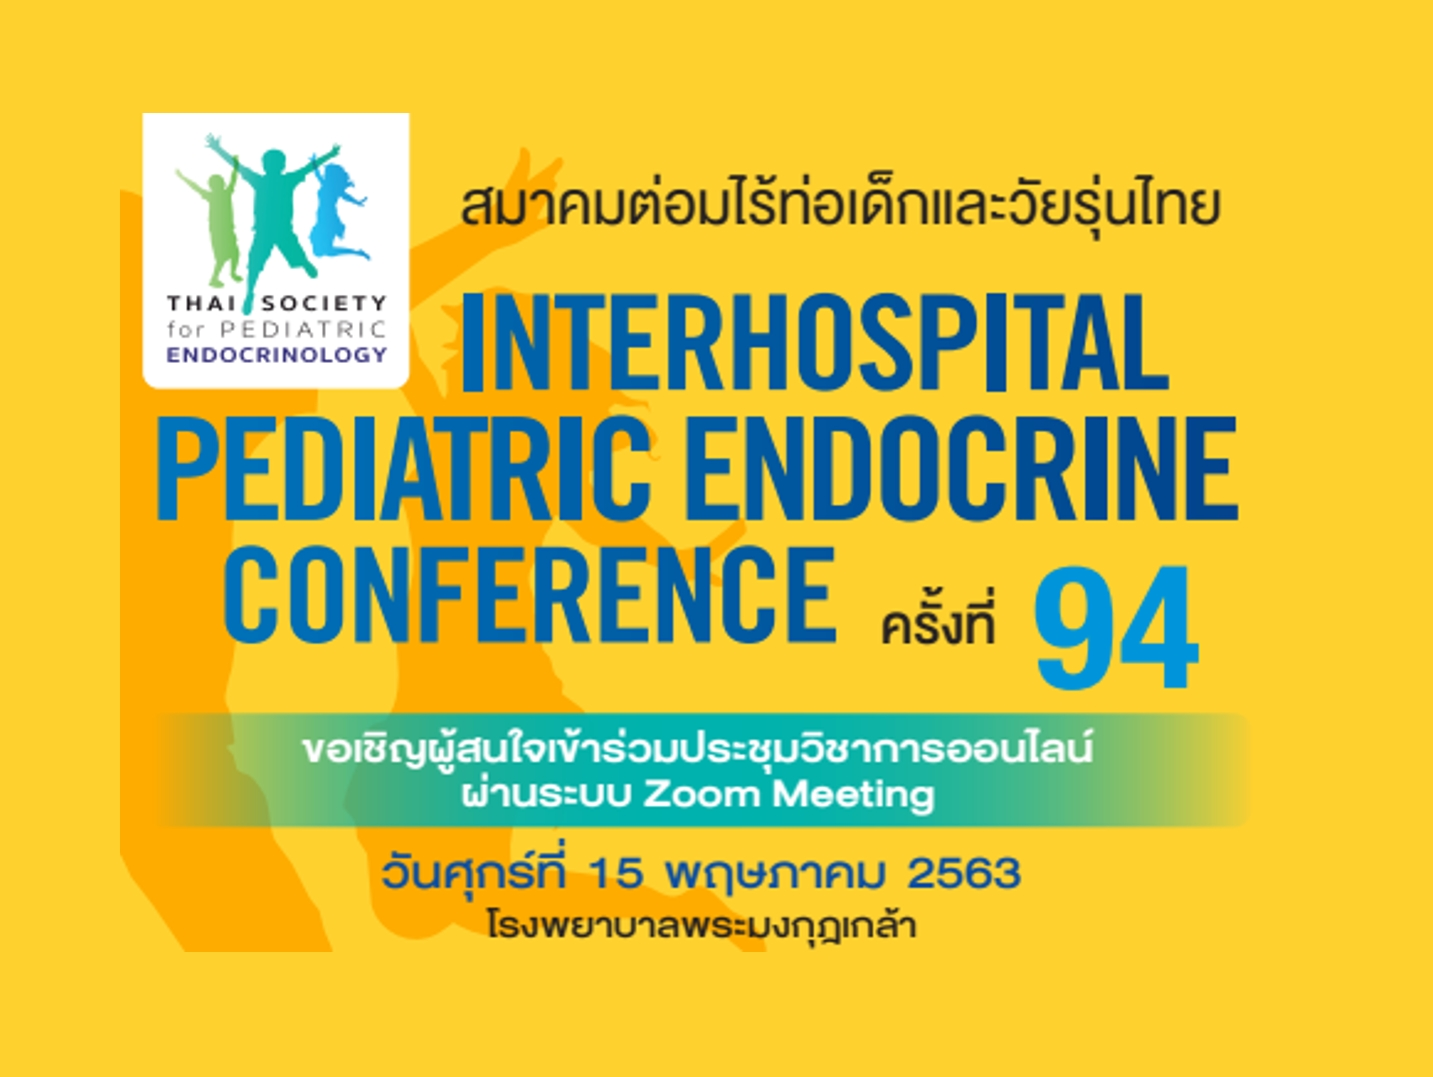 Interhospital Pediatric Endocrine Conference ครั้งที่ 94